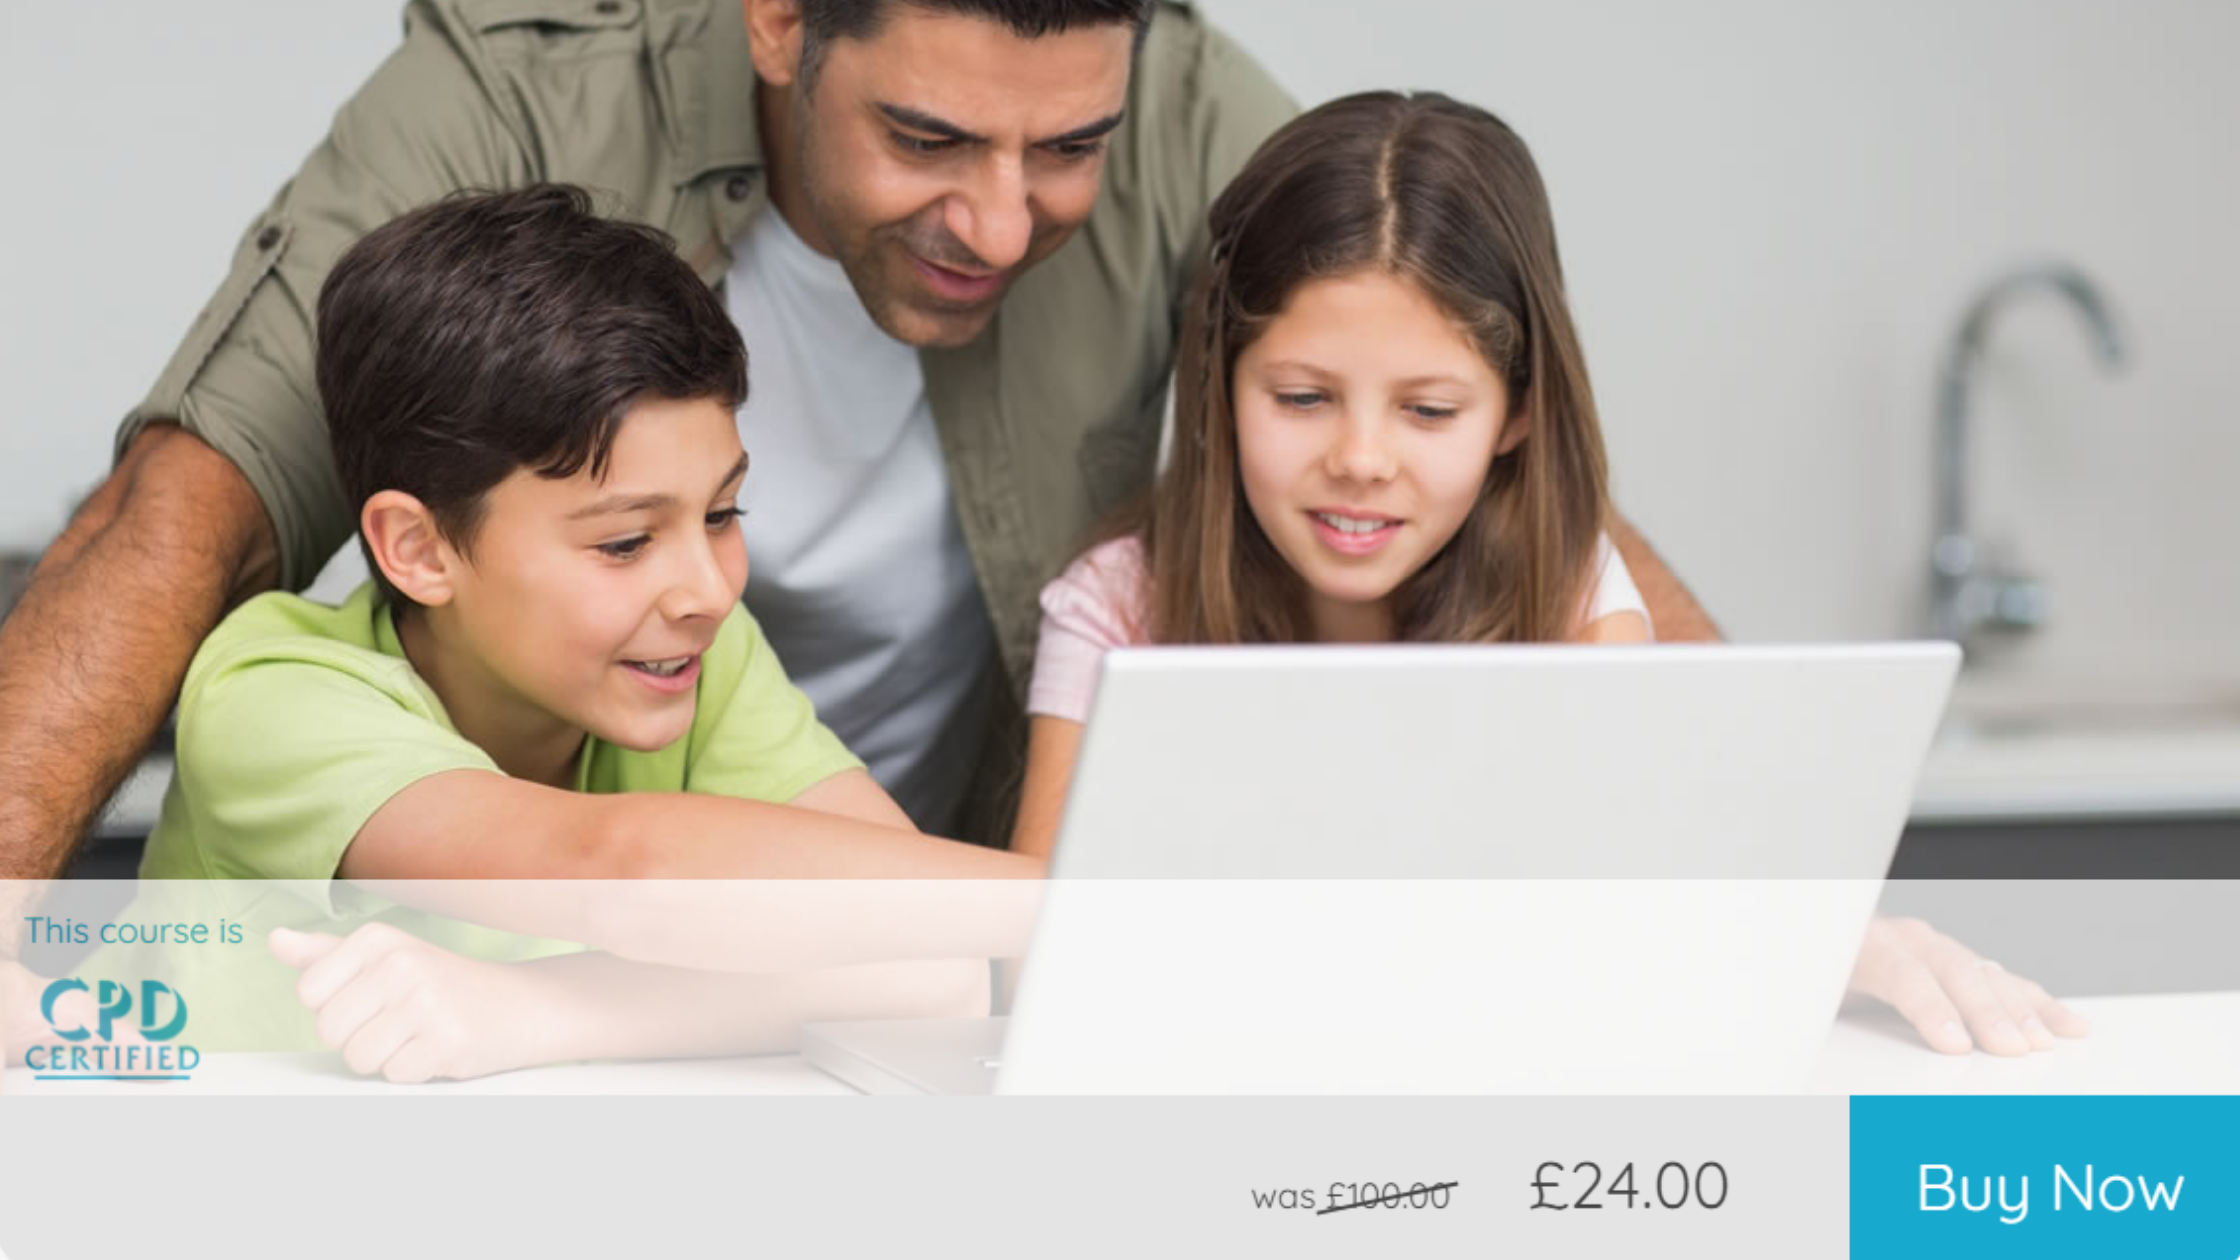 New Skills Academy Online Safety with Children Course